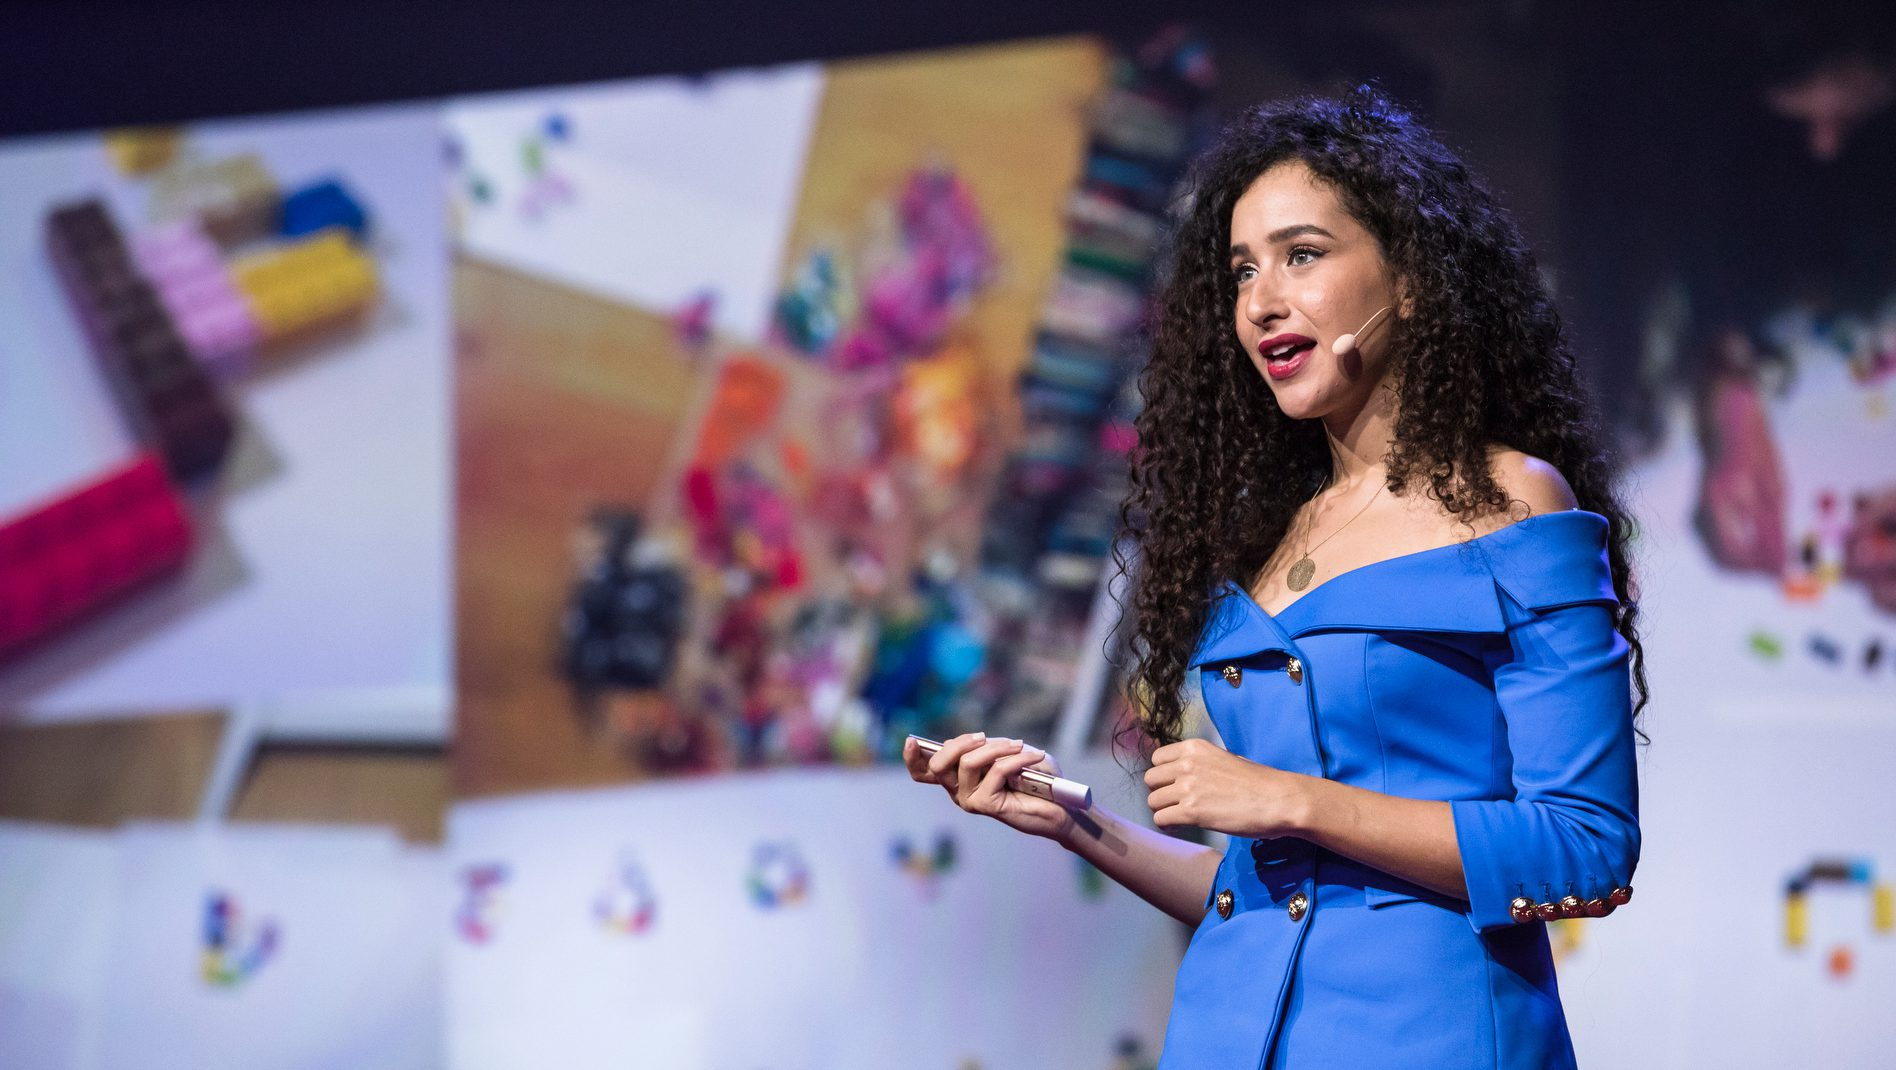 Ghada Wali speaks at TEDGlobal 2017 - Builders, Truth Tellers, Catalysts - August 27-30, 2017, Arusha, Tanzania.